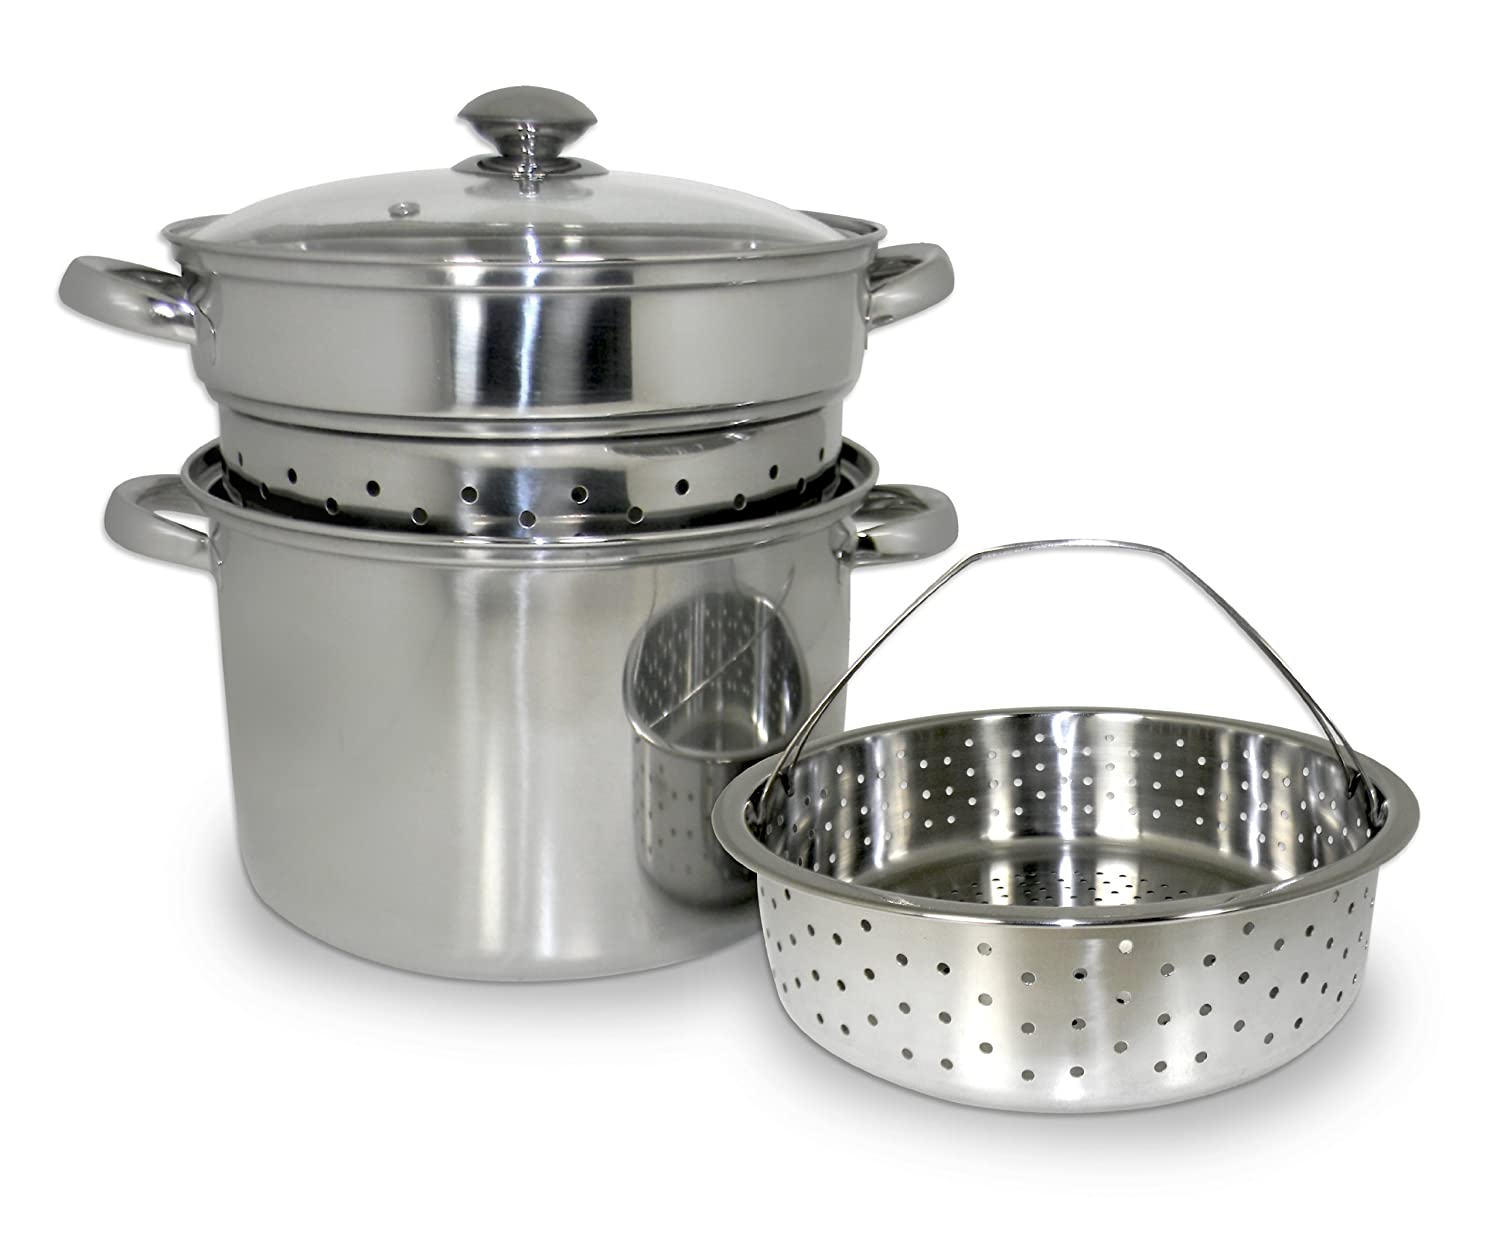 8 quart 4pcs stainless steel steamer set stock pot cooking stew soups pasta new ebay. Black Bedroom Furniture Sets. Home Design Ideas